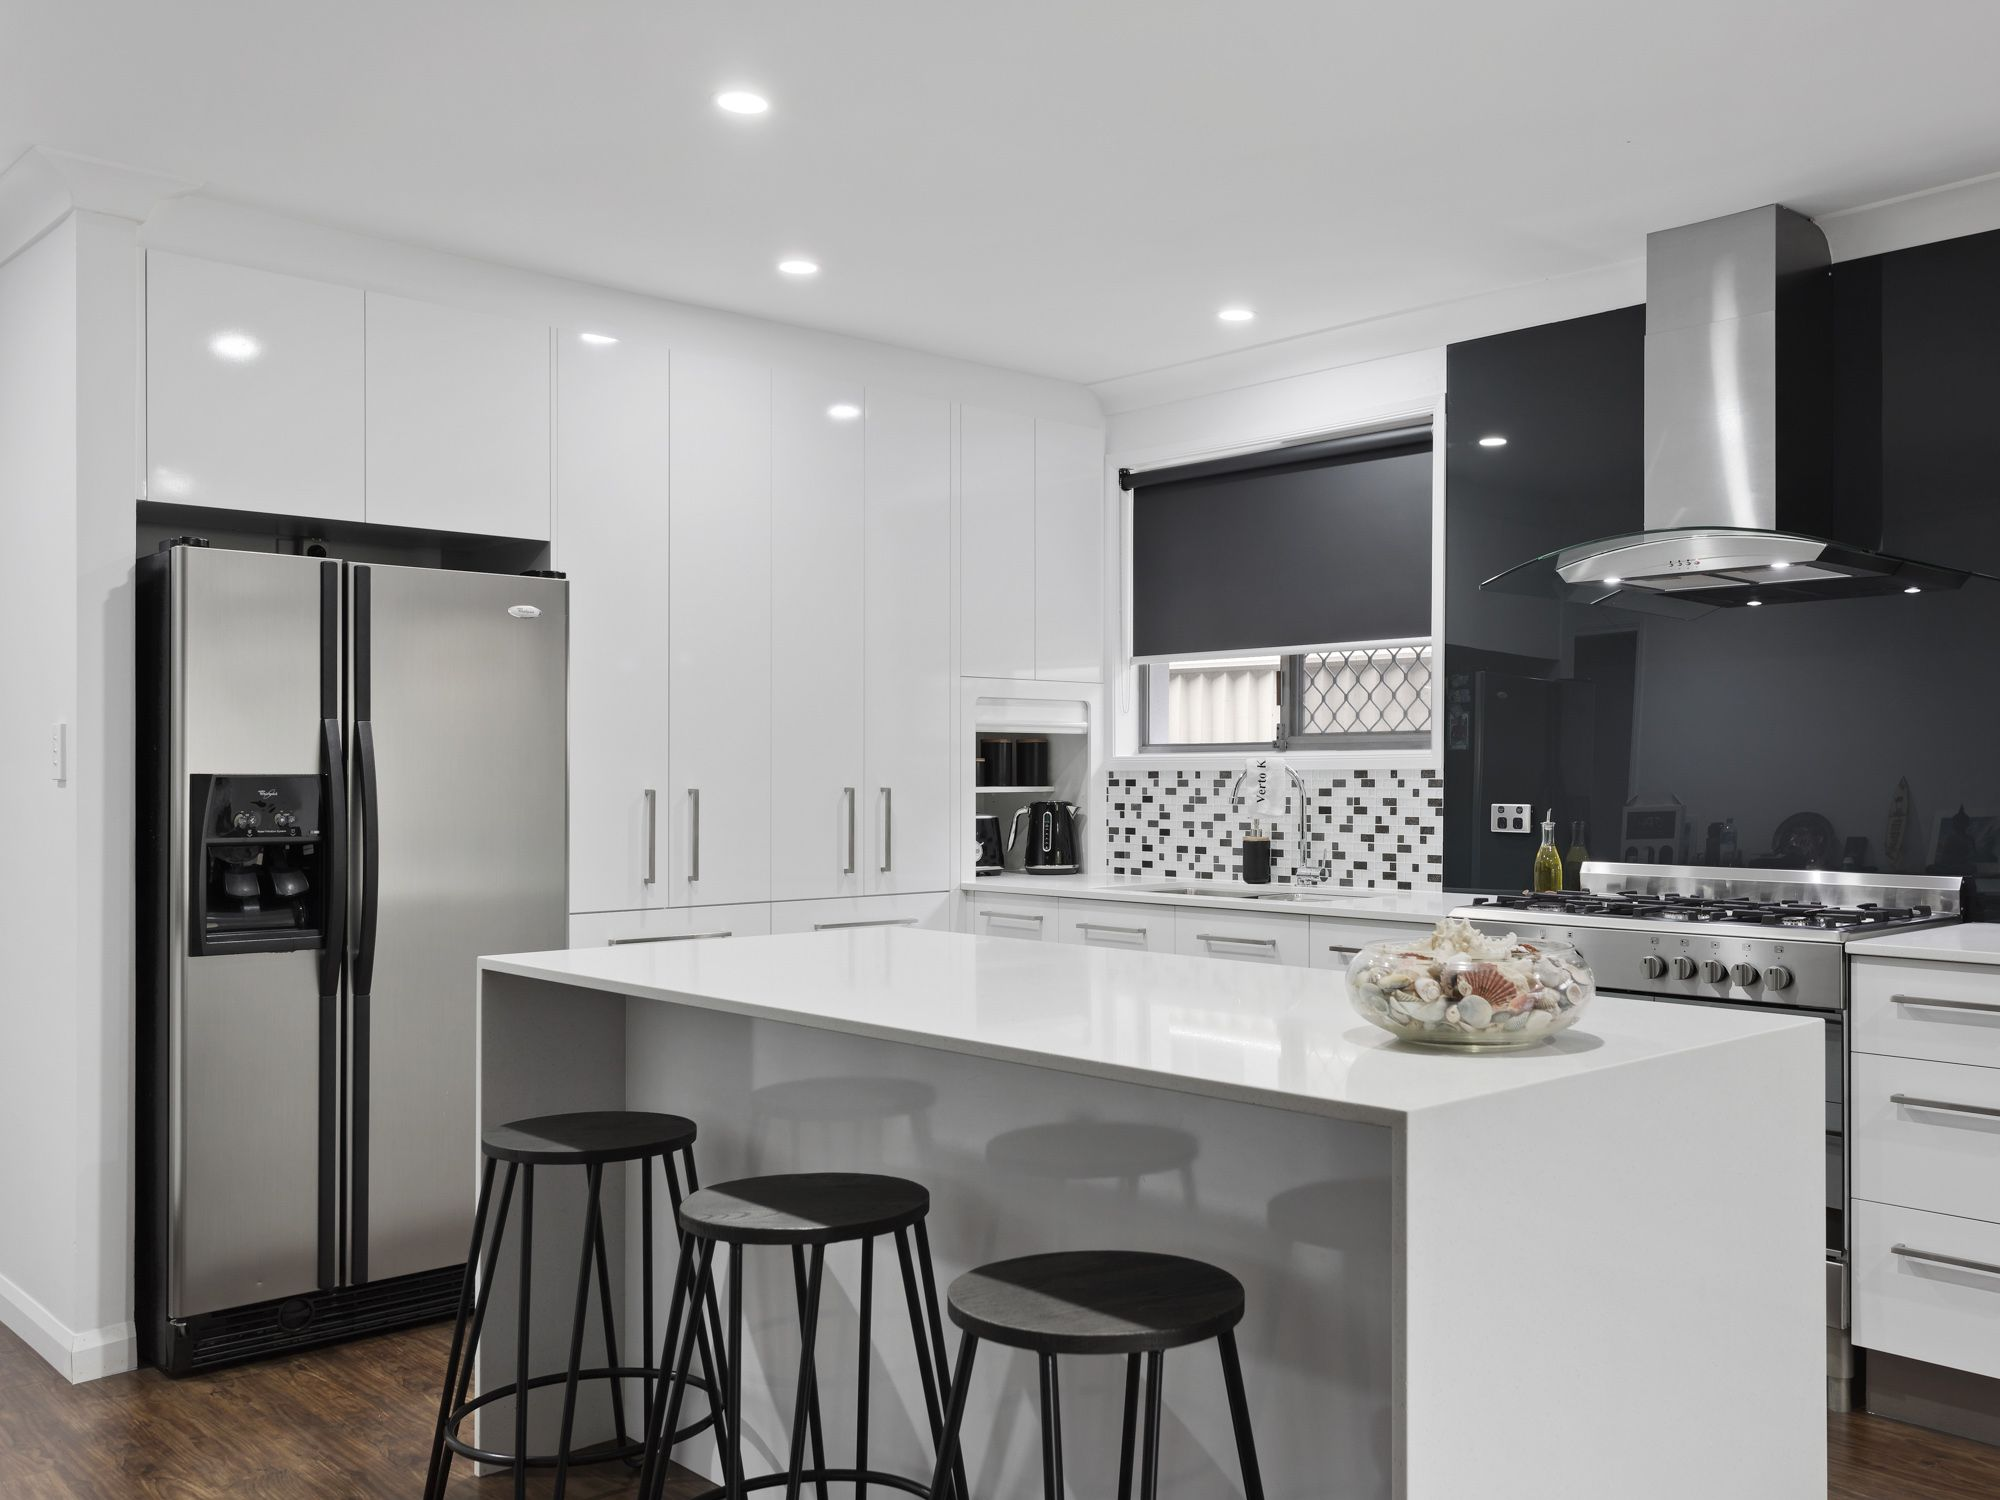 Great Black And White Kitchen With Melamine Formica Gloss Cupboards And Drawers In Snowdrift The Benchtop Is A Laminate White Kitchen Kitchen Kitchen Benches